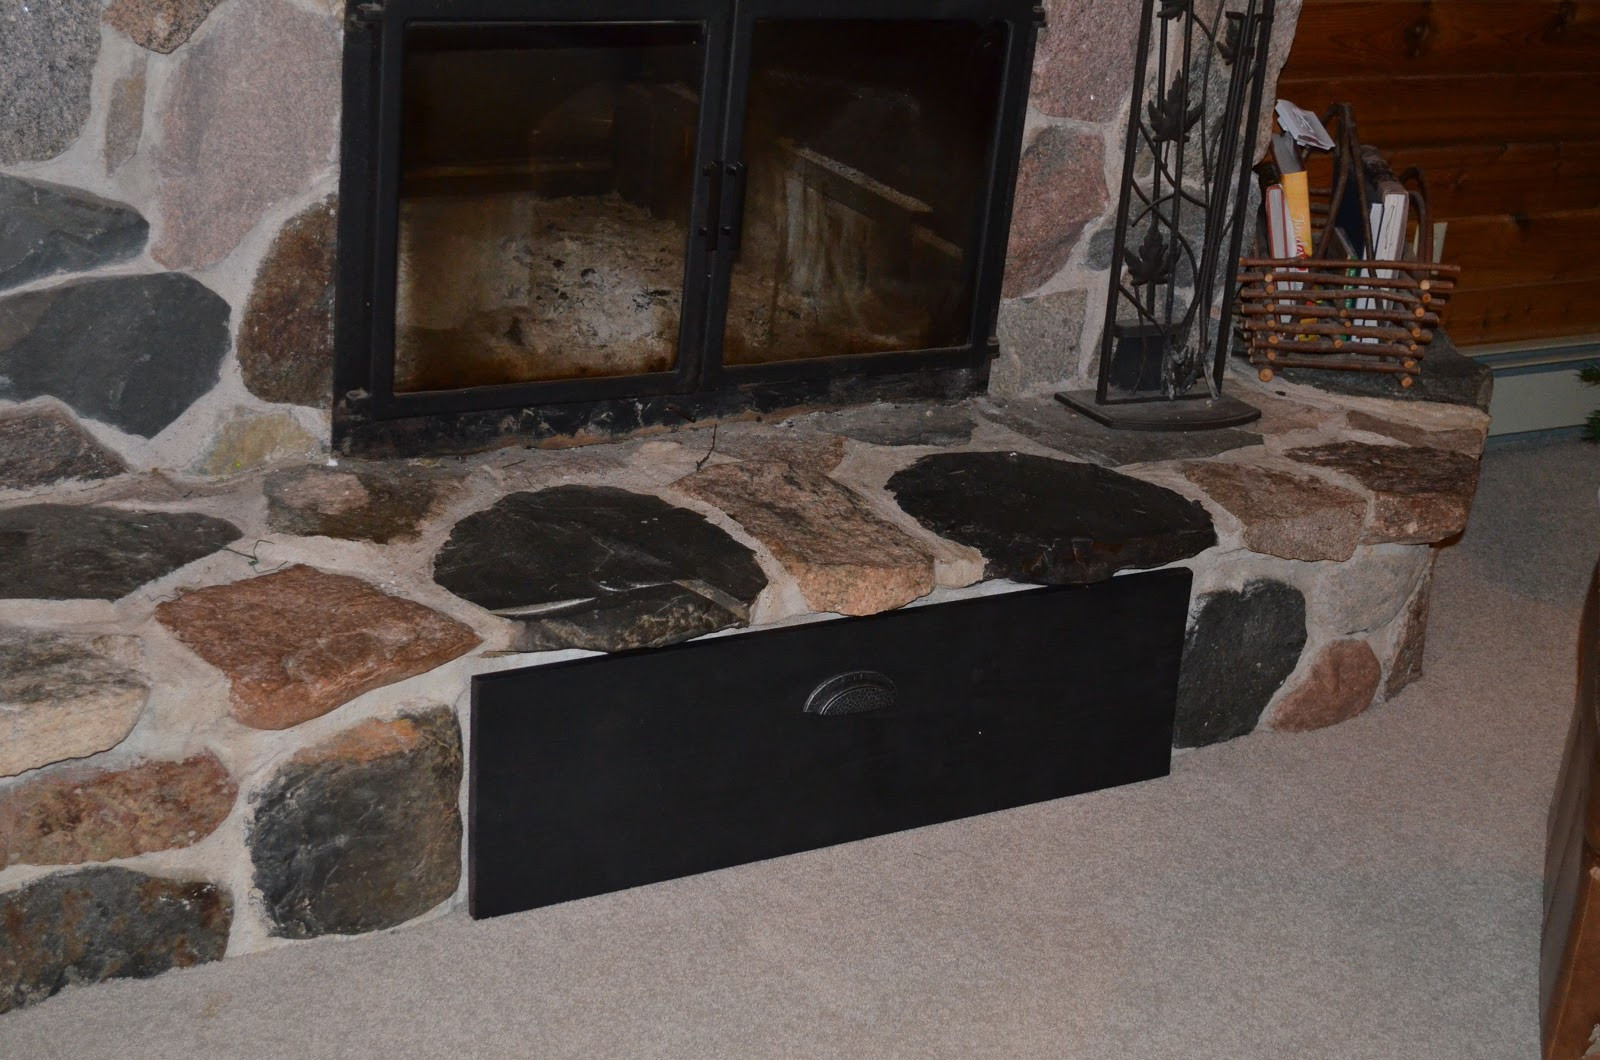 Best ideas about Fireplace Vent Cover . Save or Pin Artful Panoply Fireplace Vent Cover to Keep out Draft Now.